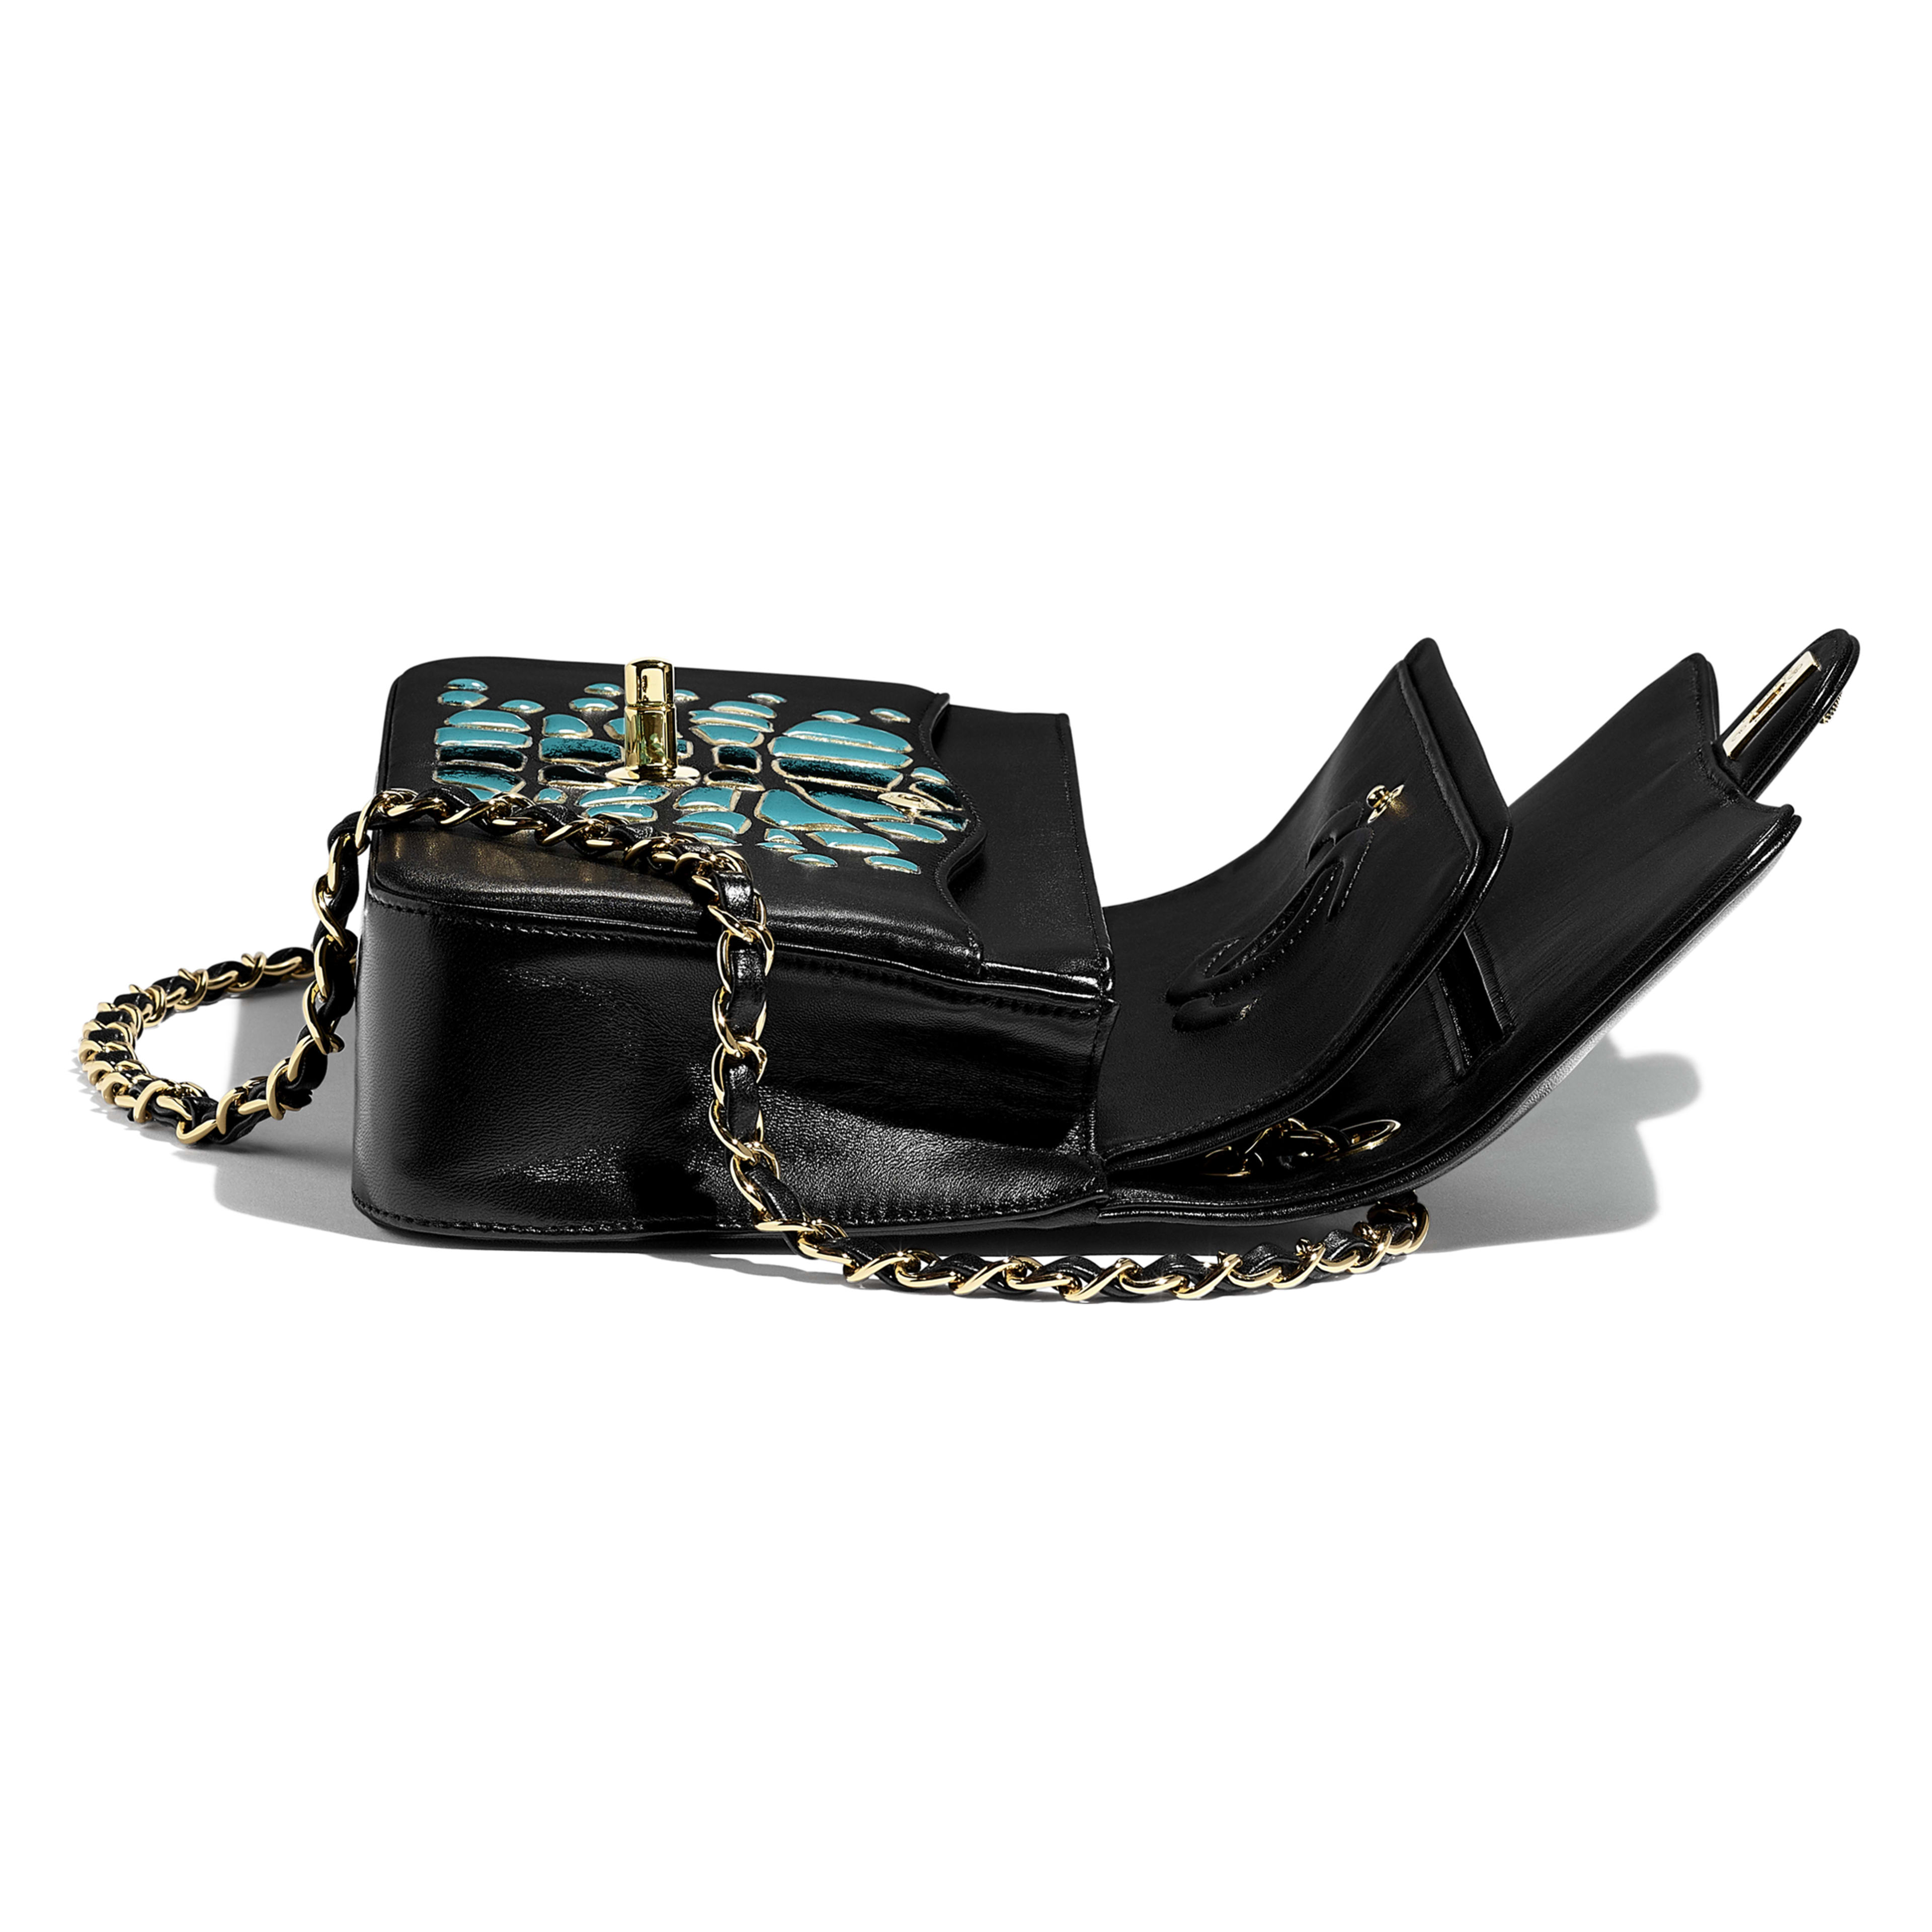 Classic Handbag - Turquoise & Black - Lambskin, Resin & Gold-Tone Metal - Other view - see full sized version